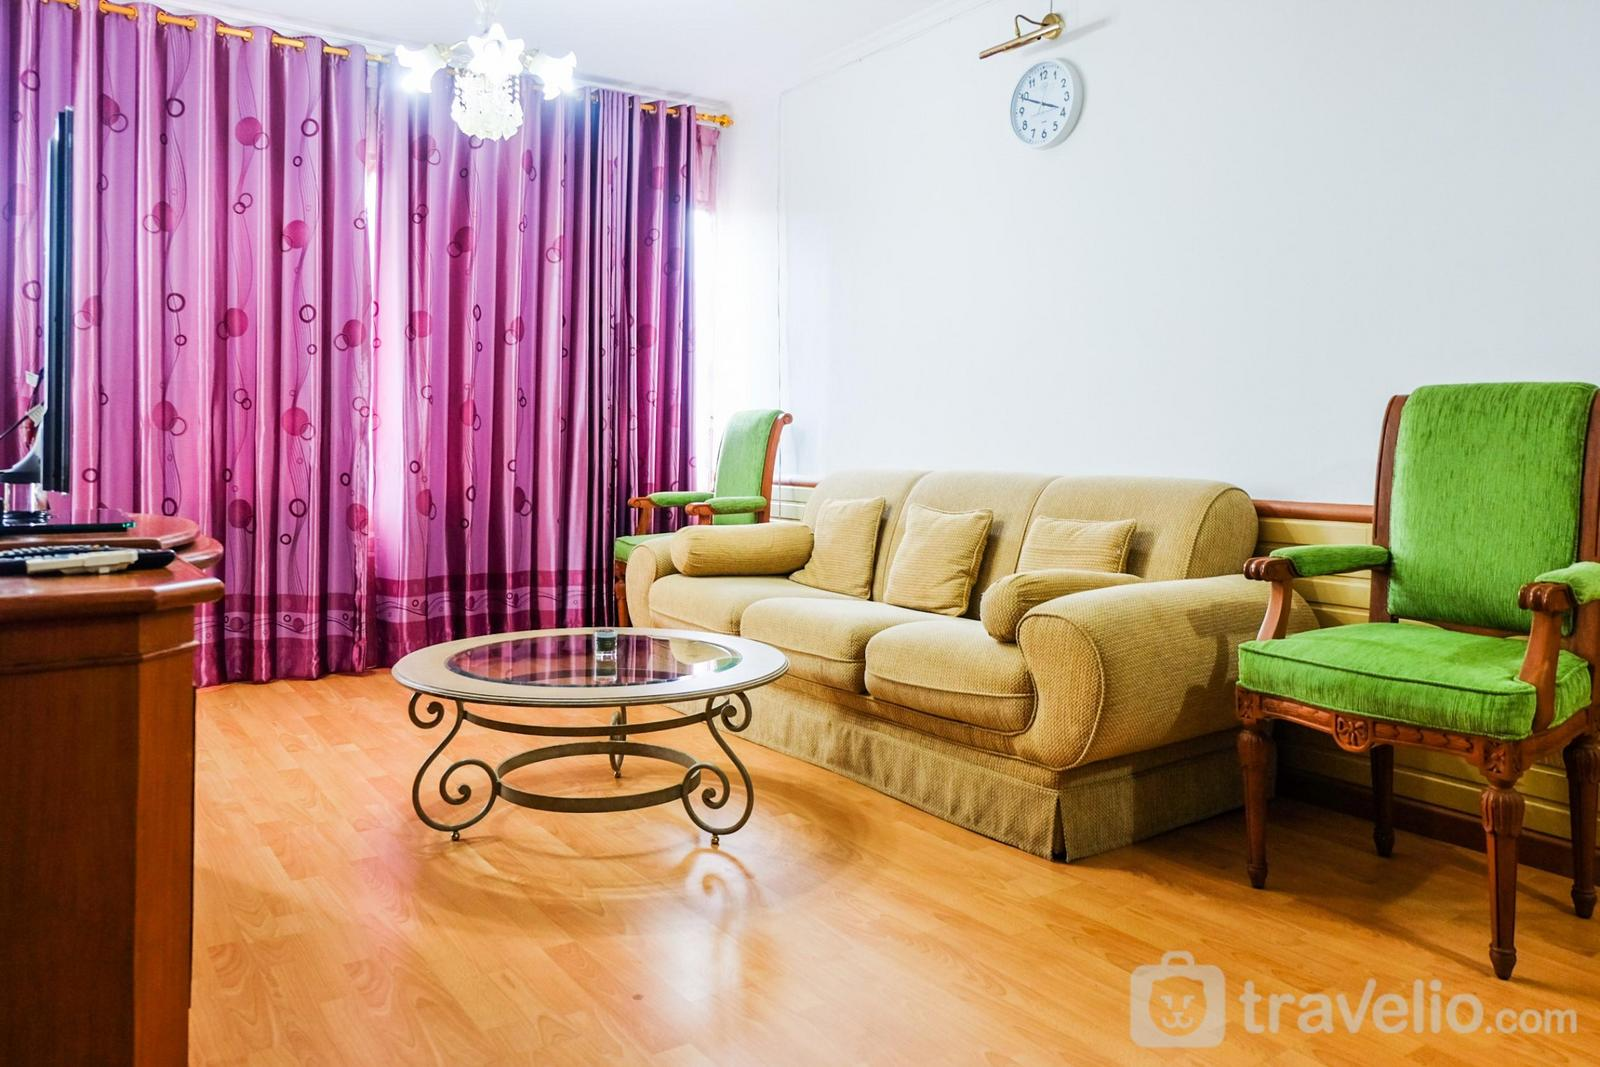 Apartemen Mitra Sunter - Affordable 2BR Mitra Sunter Apartment near MOI By Travelio